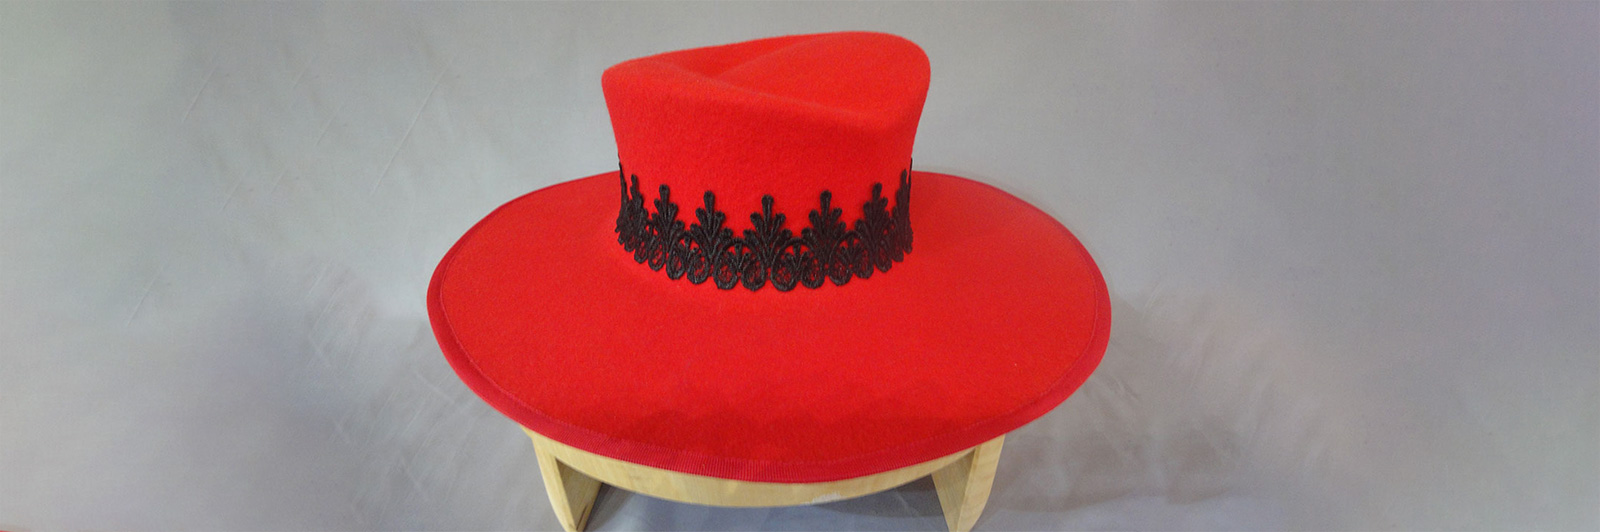 red felt hat with black lace detail